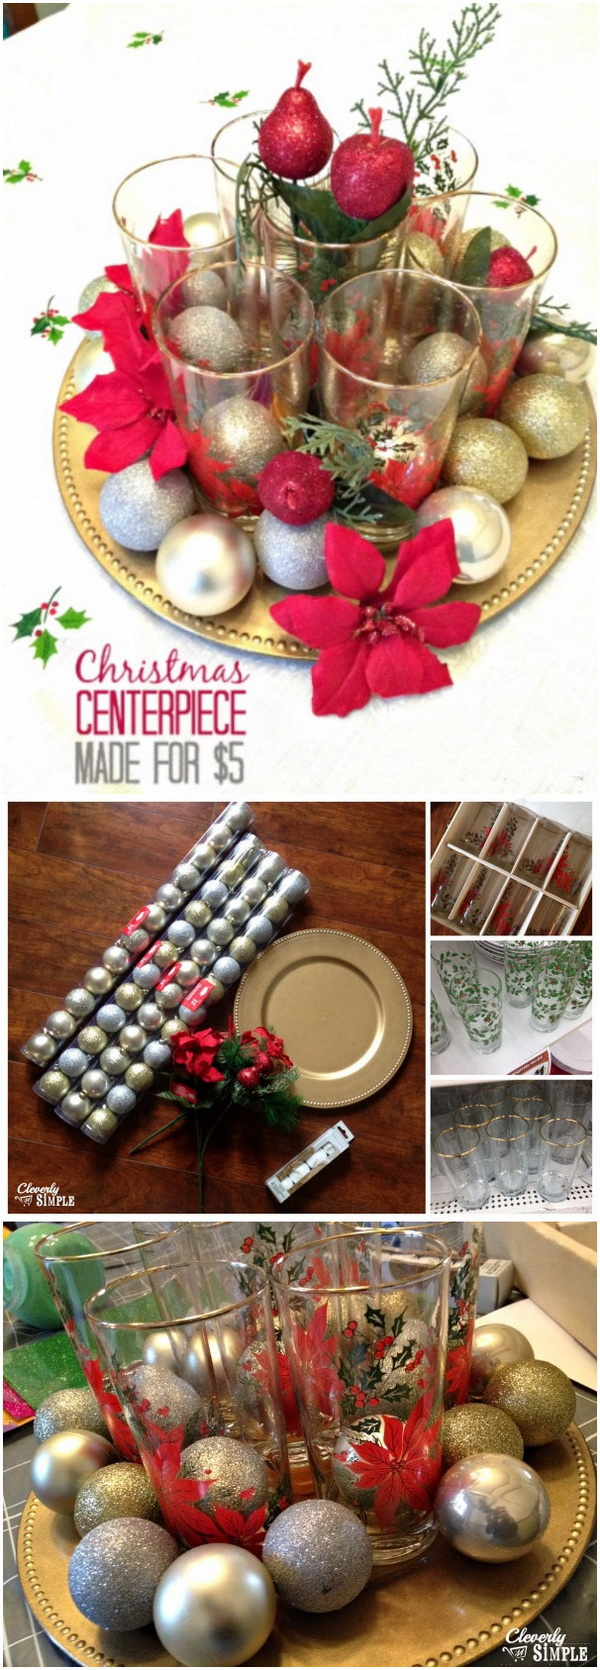 Meaningful Christmas Centerpiece. SUper easy DIY table centerpiece for Christmas made with dollar store finds!